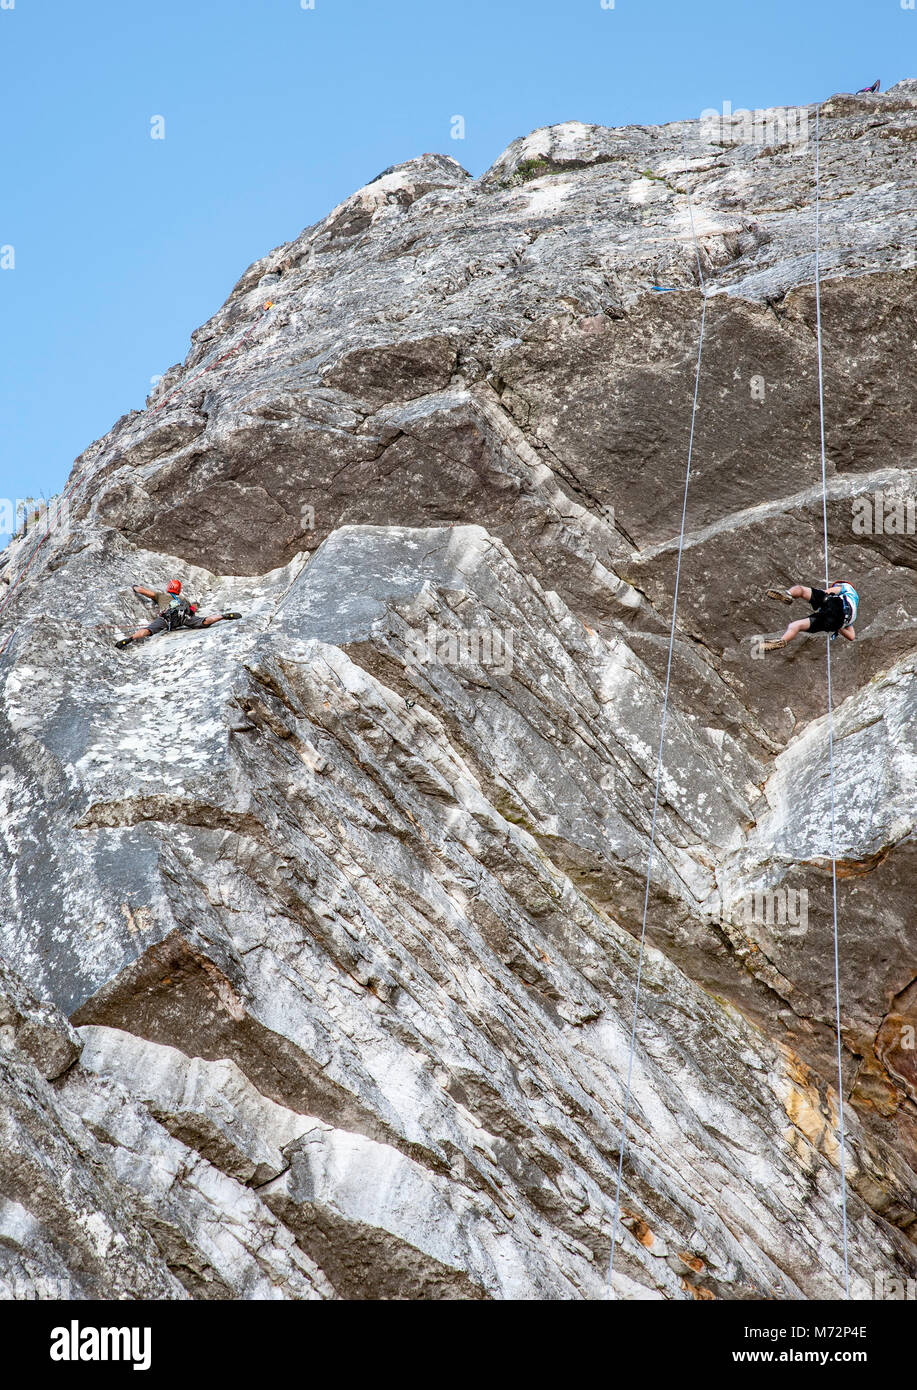 Abseilers and rock climbers just below the summit of Table Mountain in Cape Town. Stock Photo